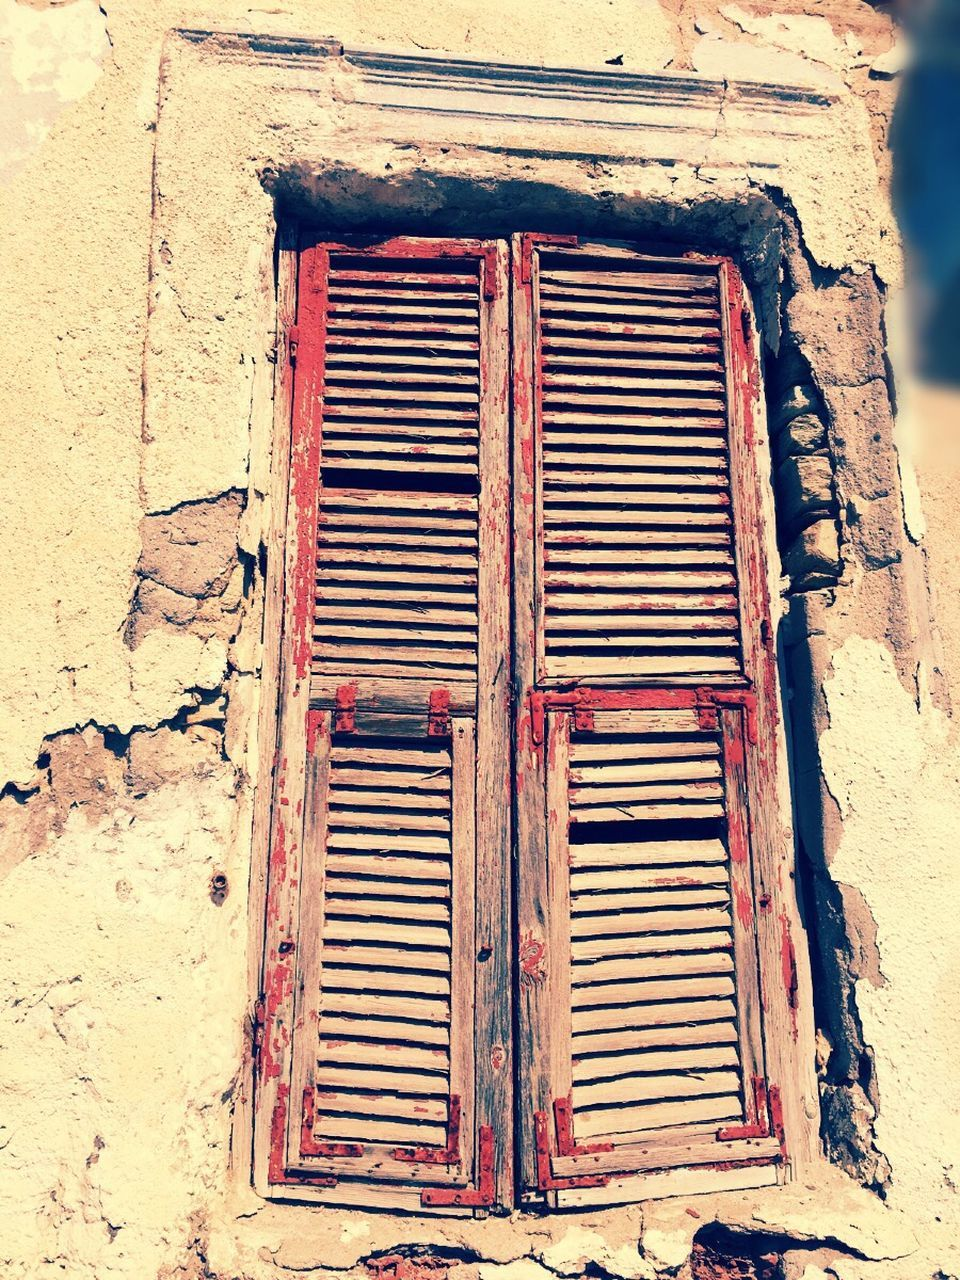 architecture, built structure, no people, weathered, day, outdoors, building exterior, rusty, close-up